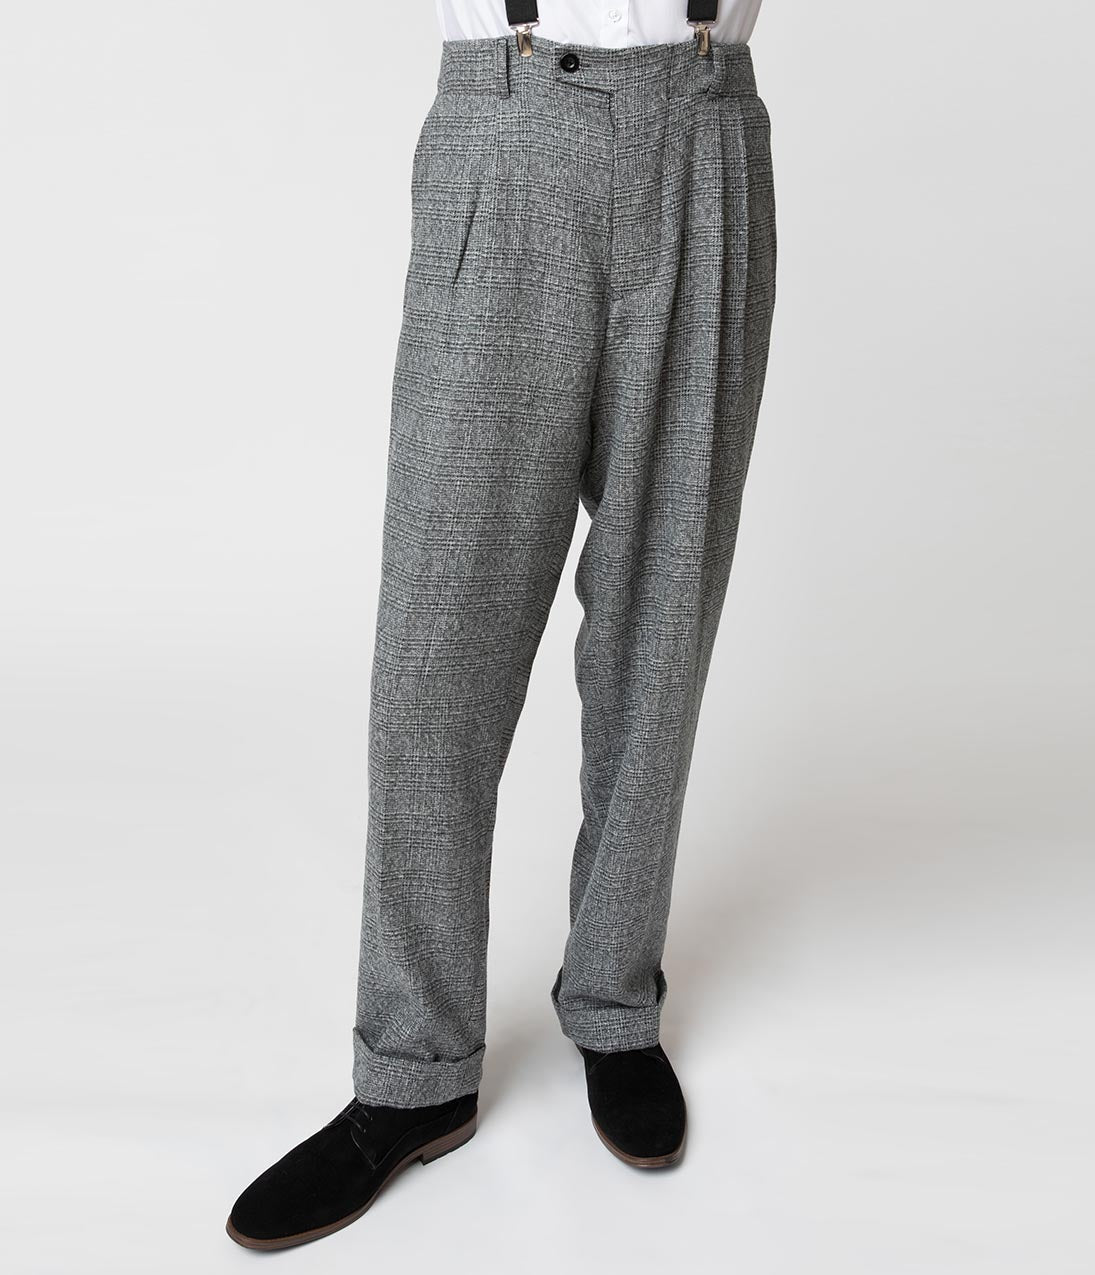 15539108d4d Unique Vintage 1930s Style Grey Checkered Woven Men Pants